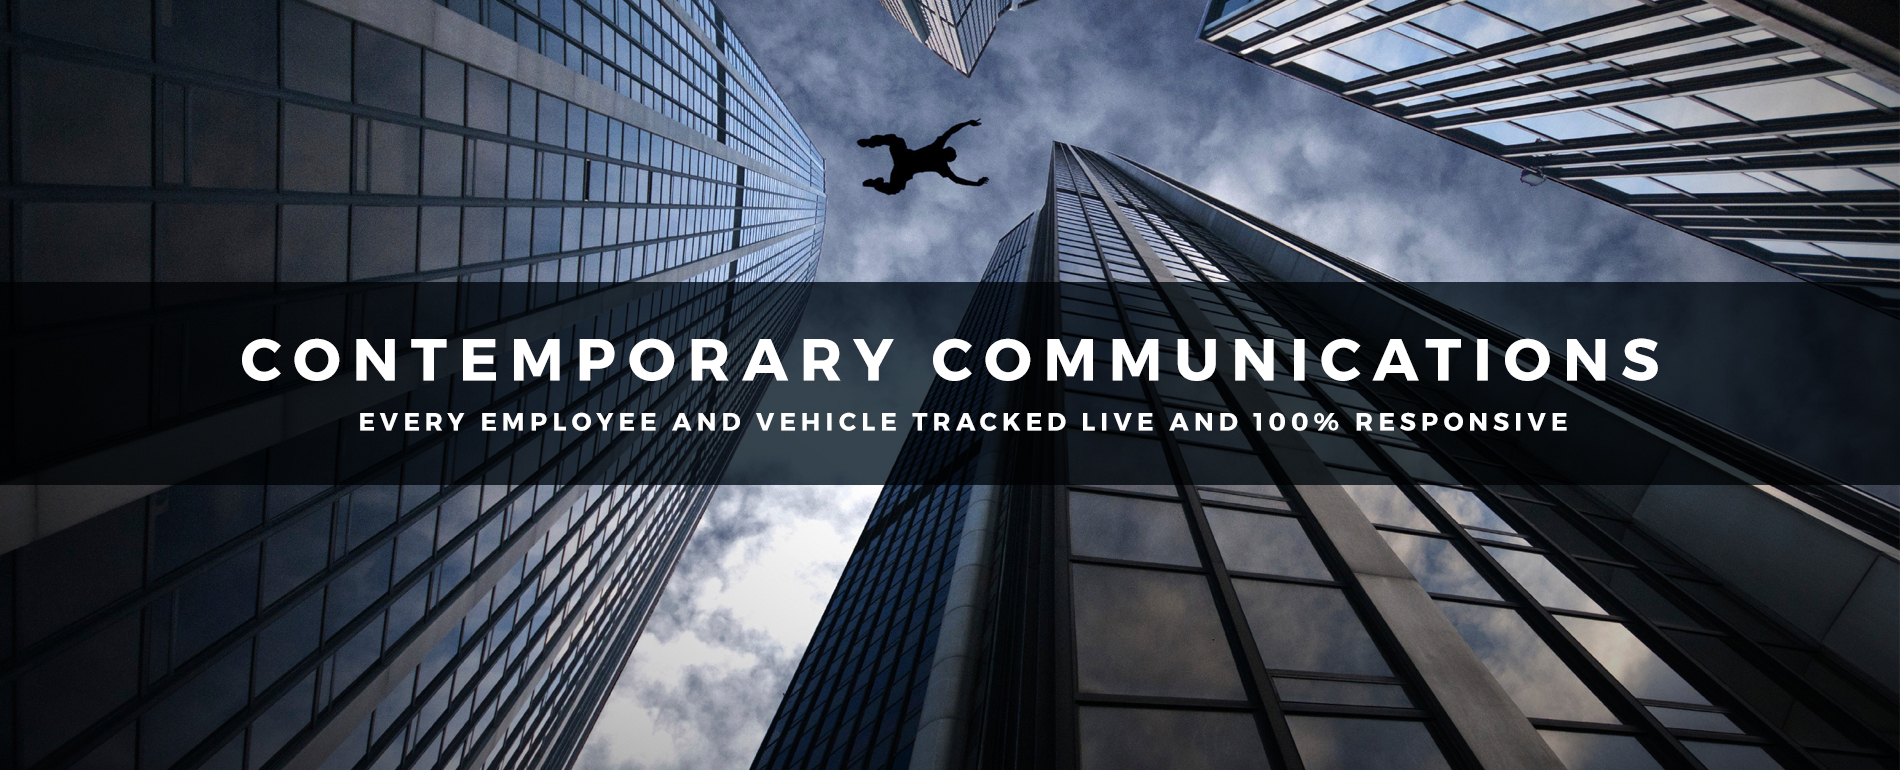 Contemporary Communications